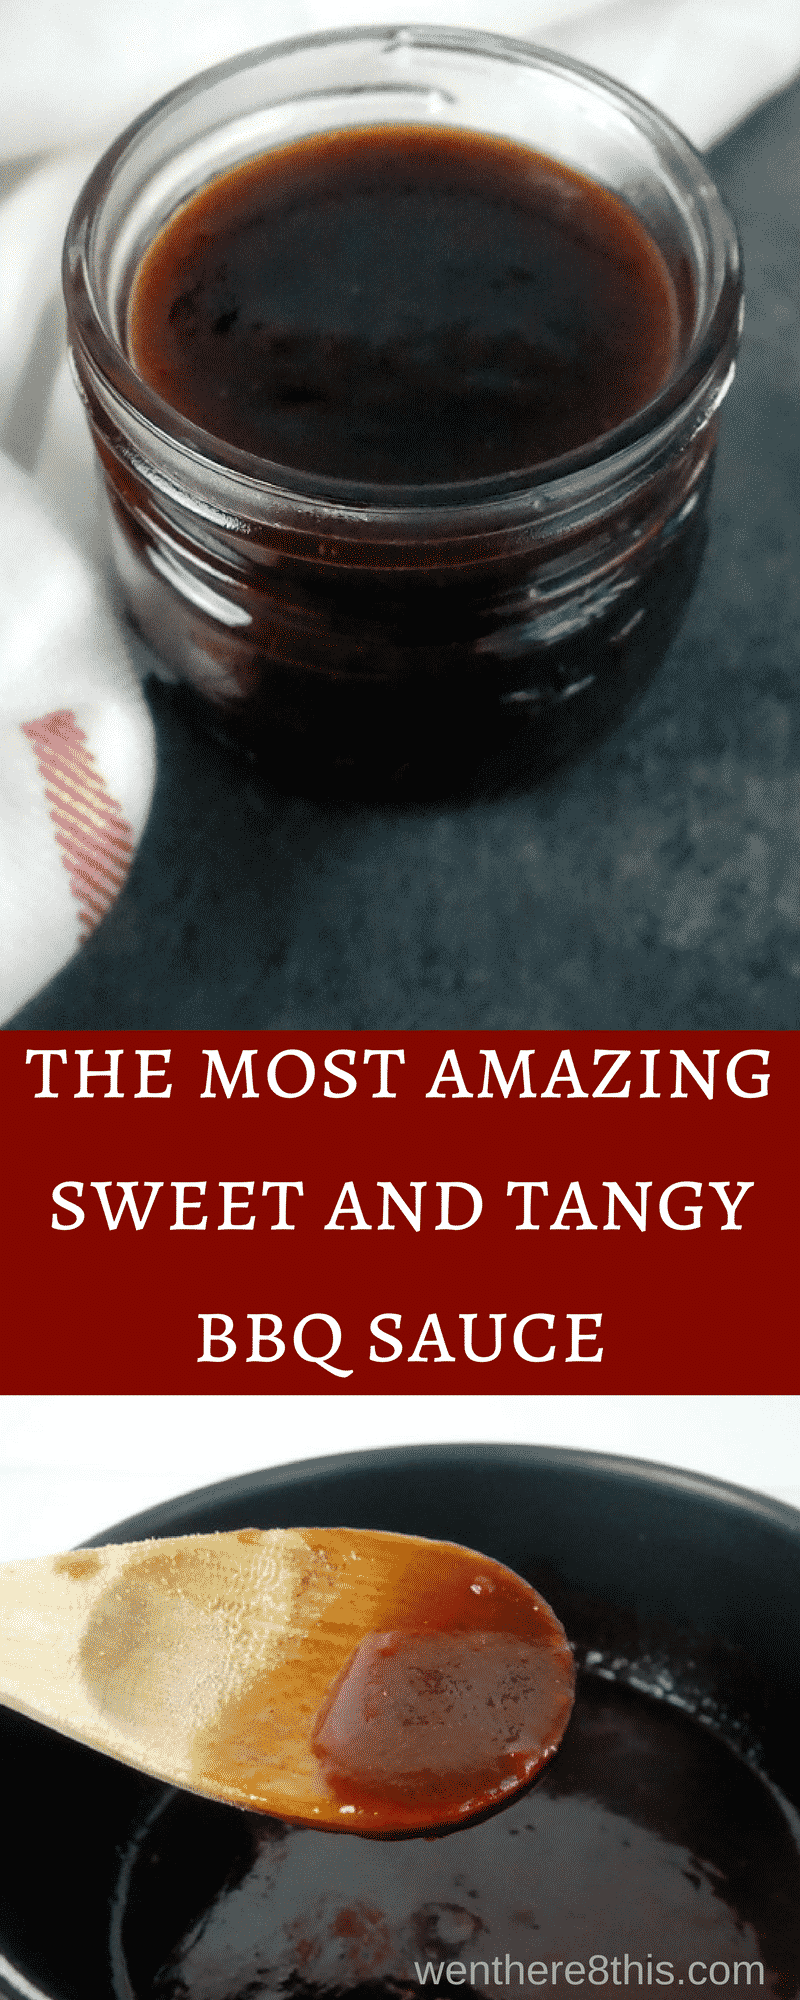 This smoky sweet and tangy barbecue sauce recipe is super simple to make, with only 7 ingredients and a cook time of 5 minutes. You\'ll never use another sauce!homemade BBQ sauce | best BBQ sauce | barbecue sauce recipe | sweet BB sauce | tangy BBQ sauce | easy barbecue sauce | how to make barbecue sauce | brown sugar BBQ sauce | southern BBQ sauce | BBQ sauce for ribs | BBQ sauce for chicken